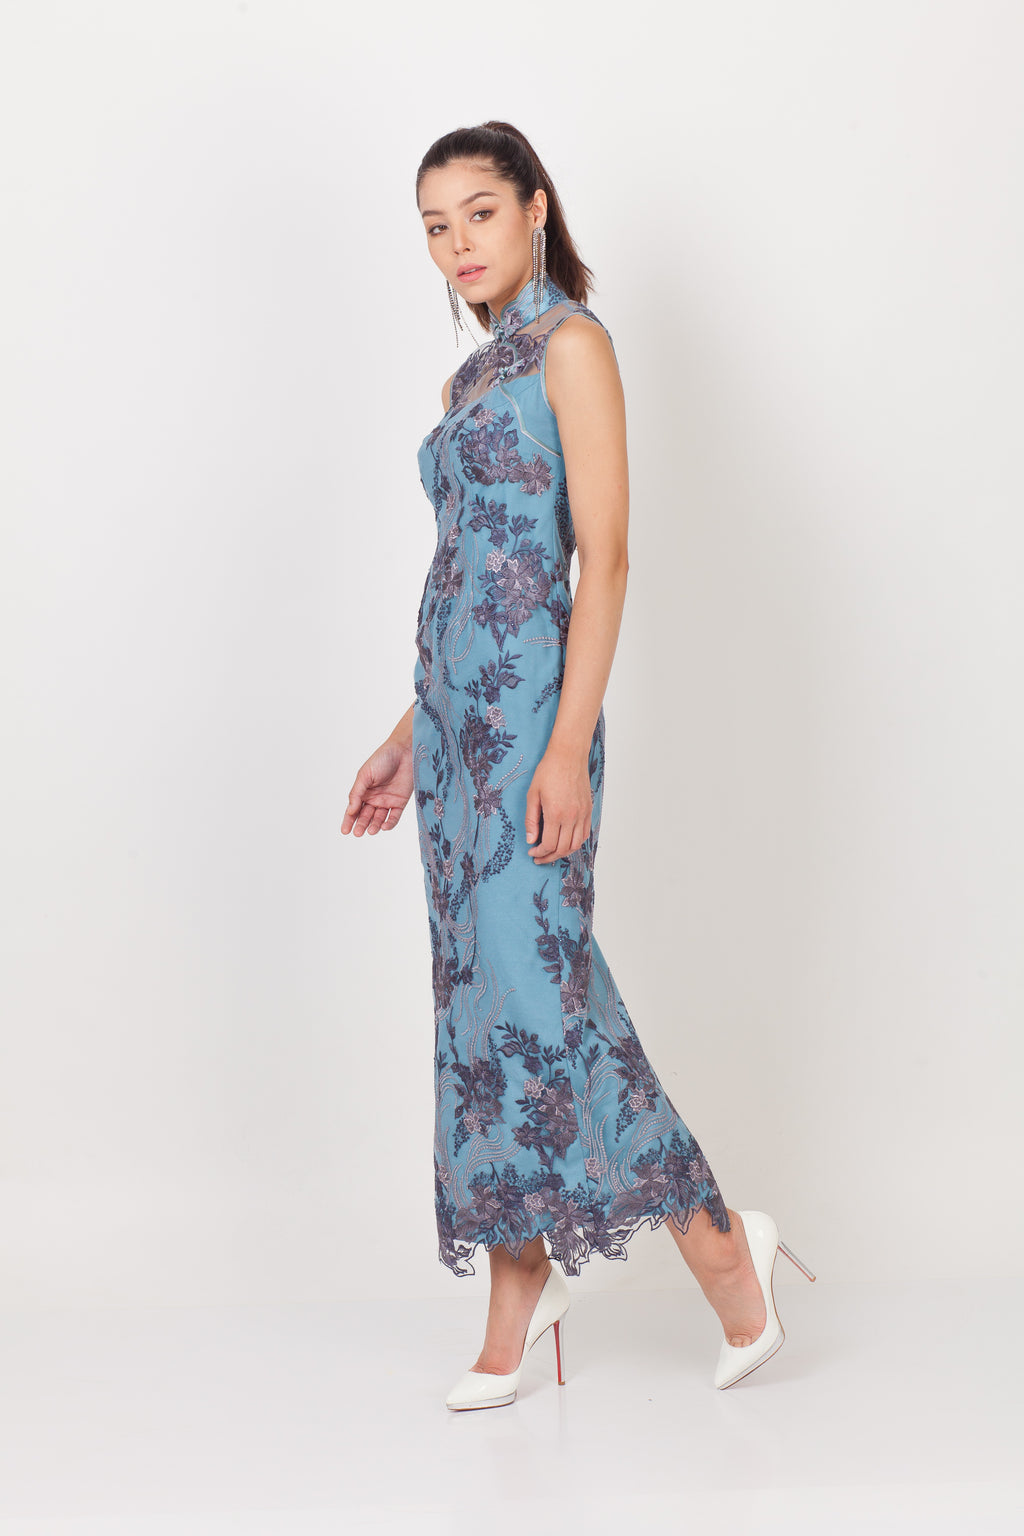 Qipology Sleeveless Lace Qipao